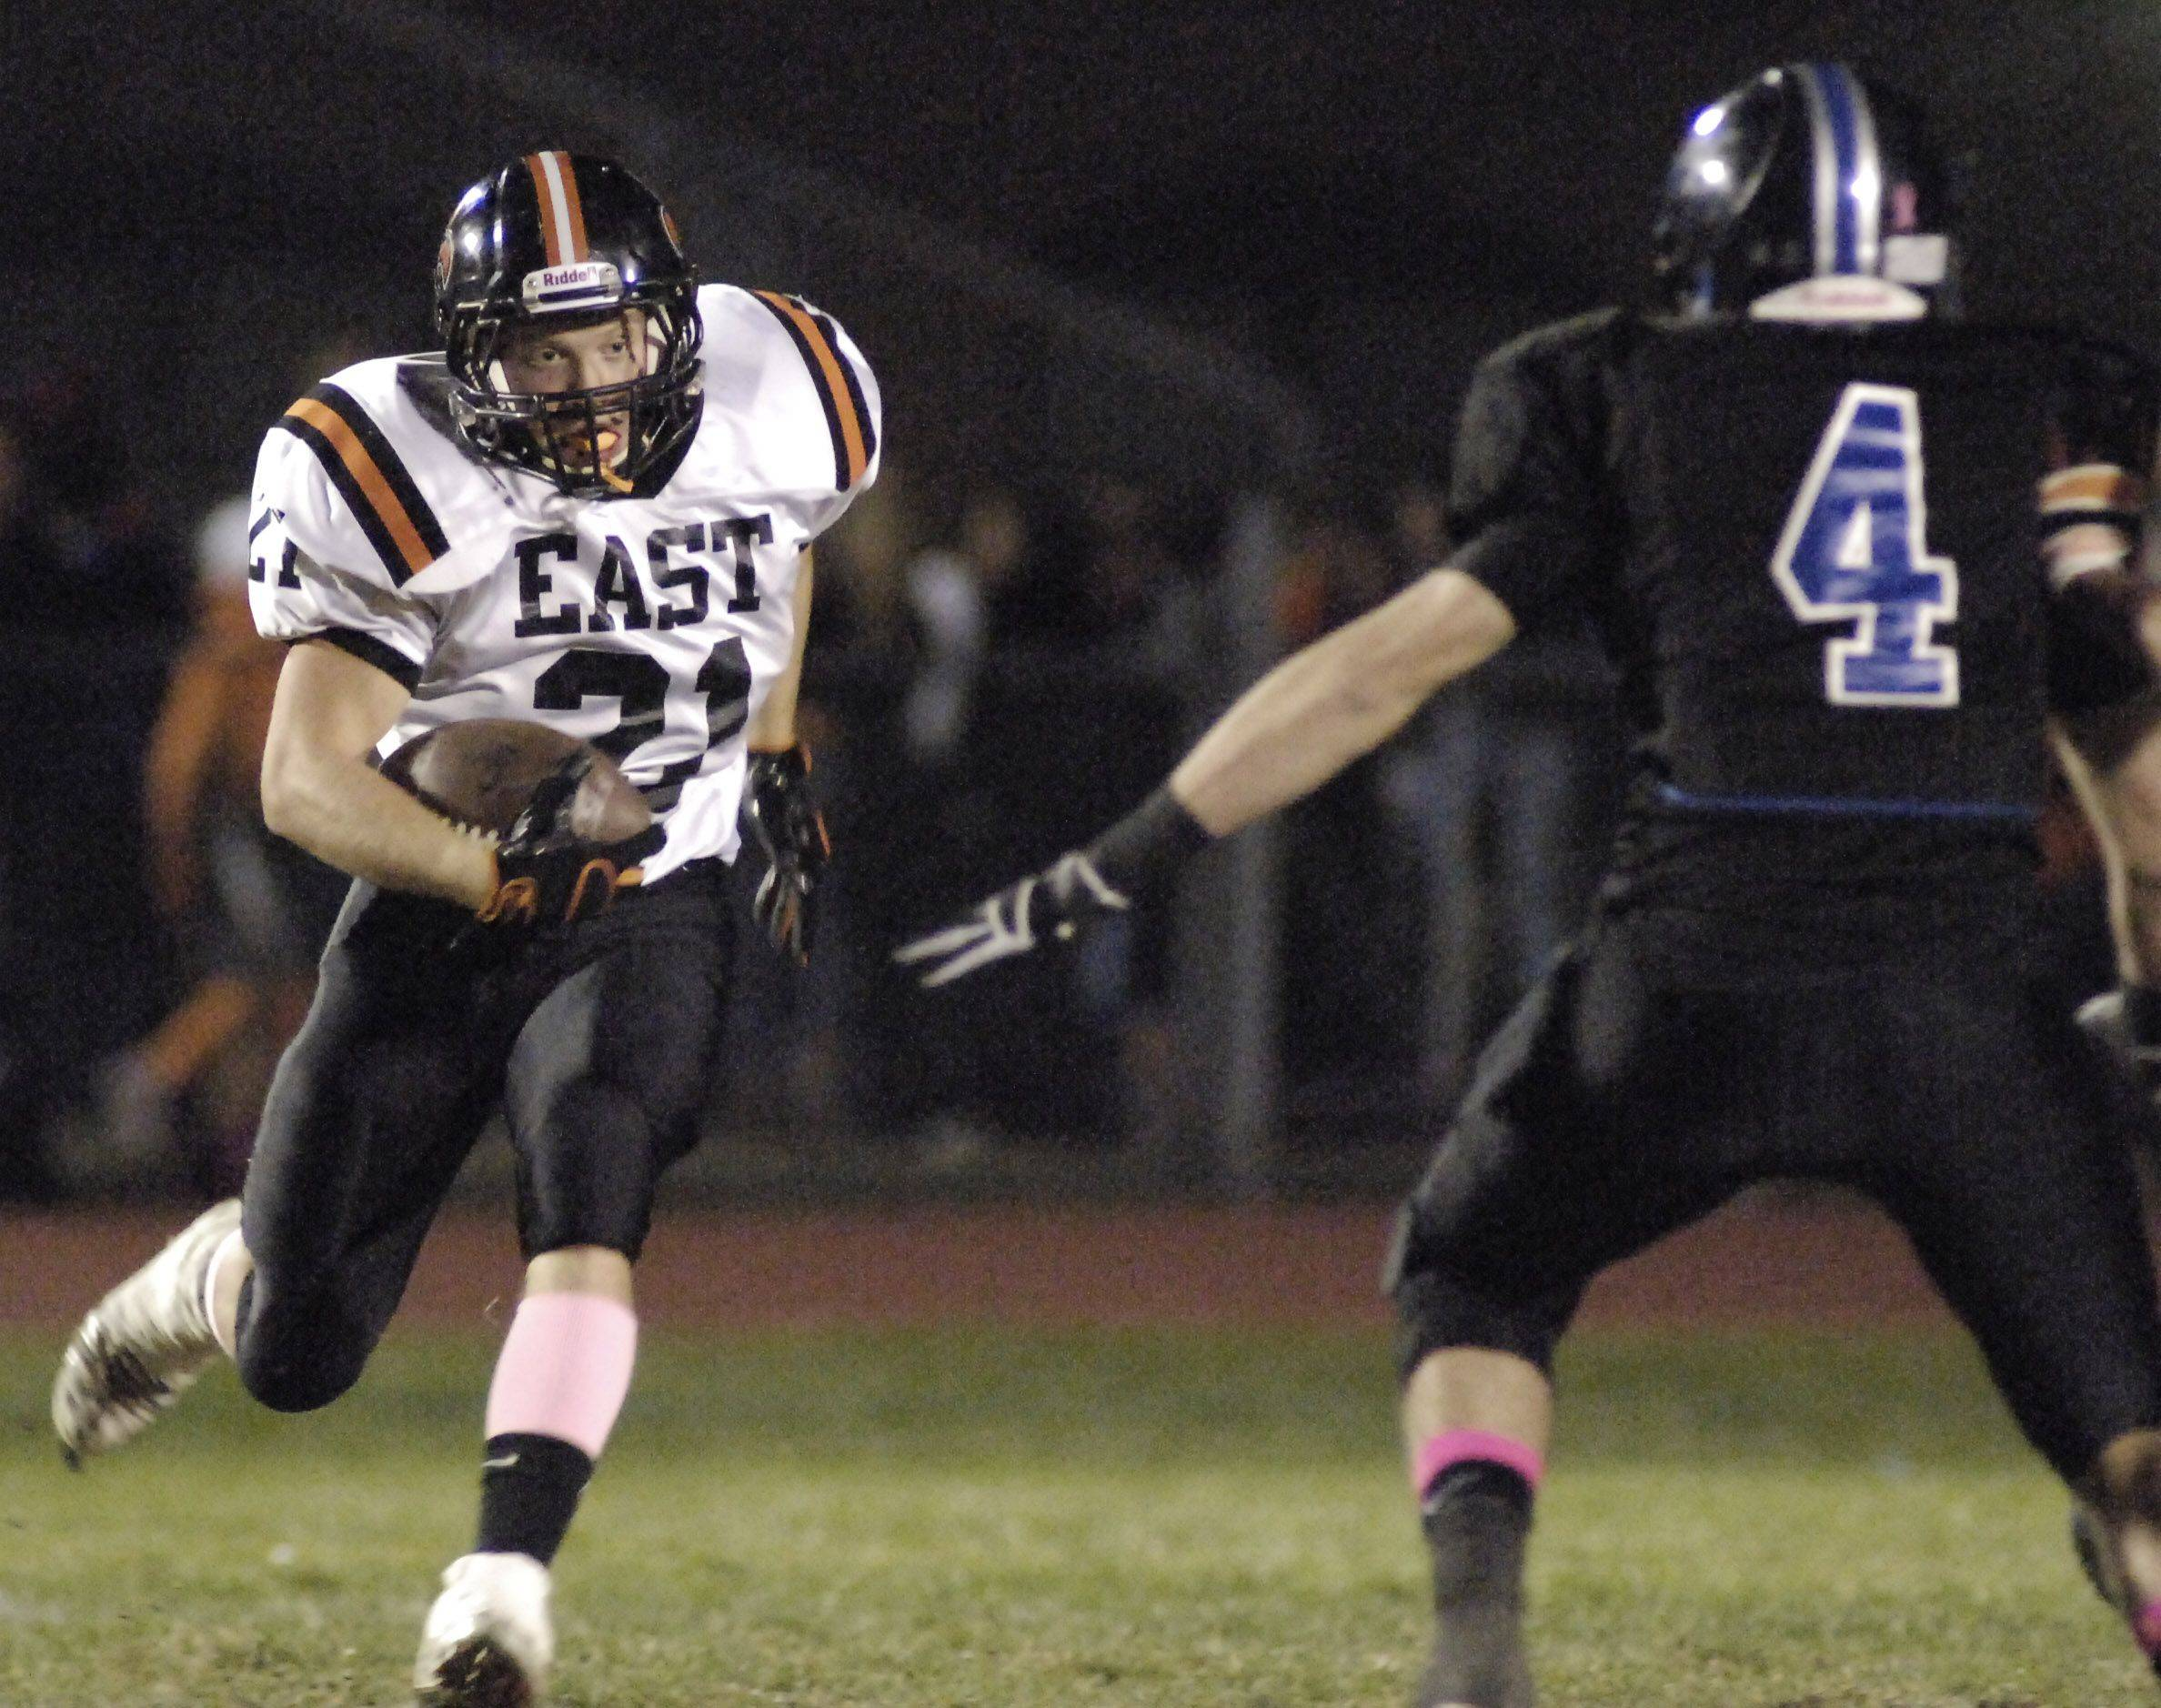 WEEK 9- St. Charles East's Zach Zajicek manuevers around St. Charles North's Patrick McGushin in the first quarter .